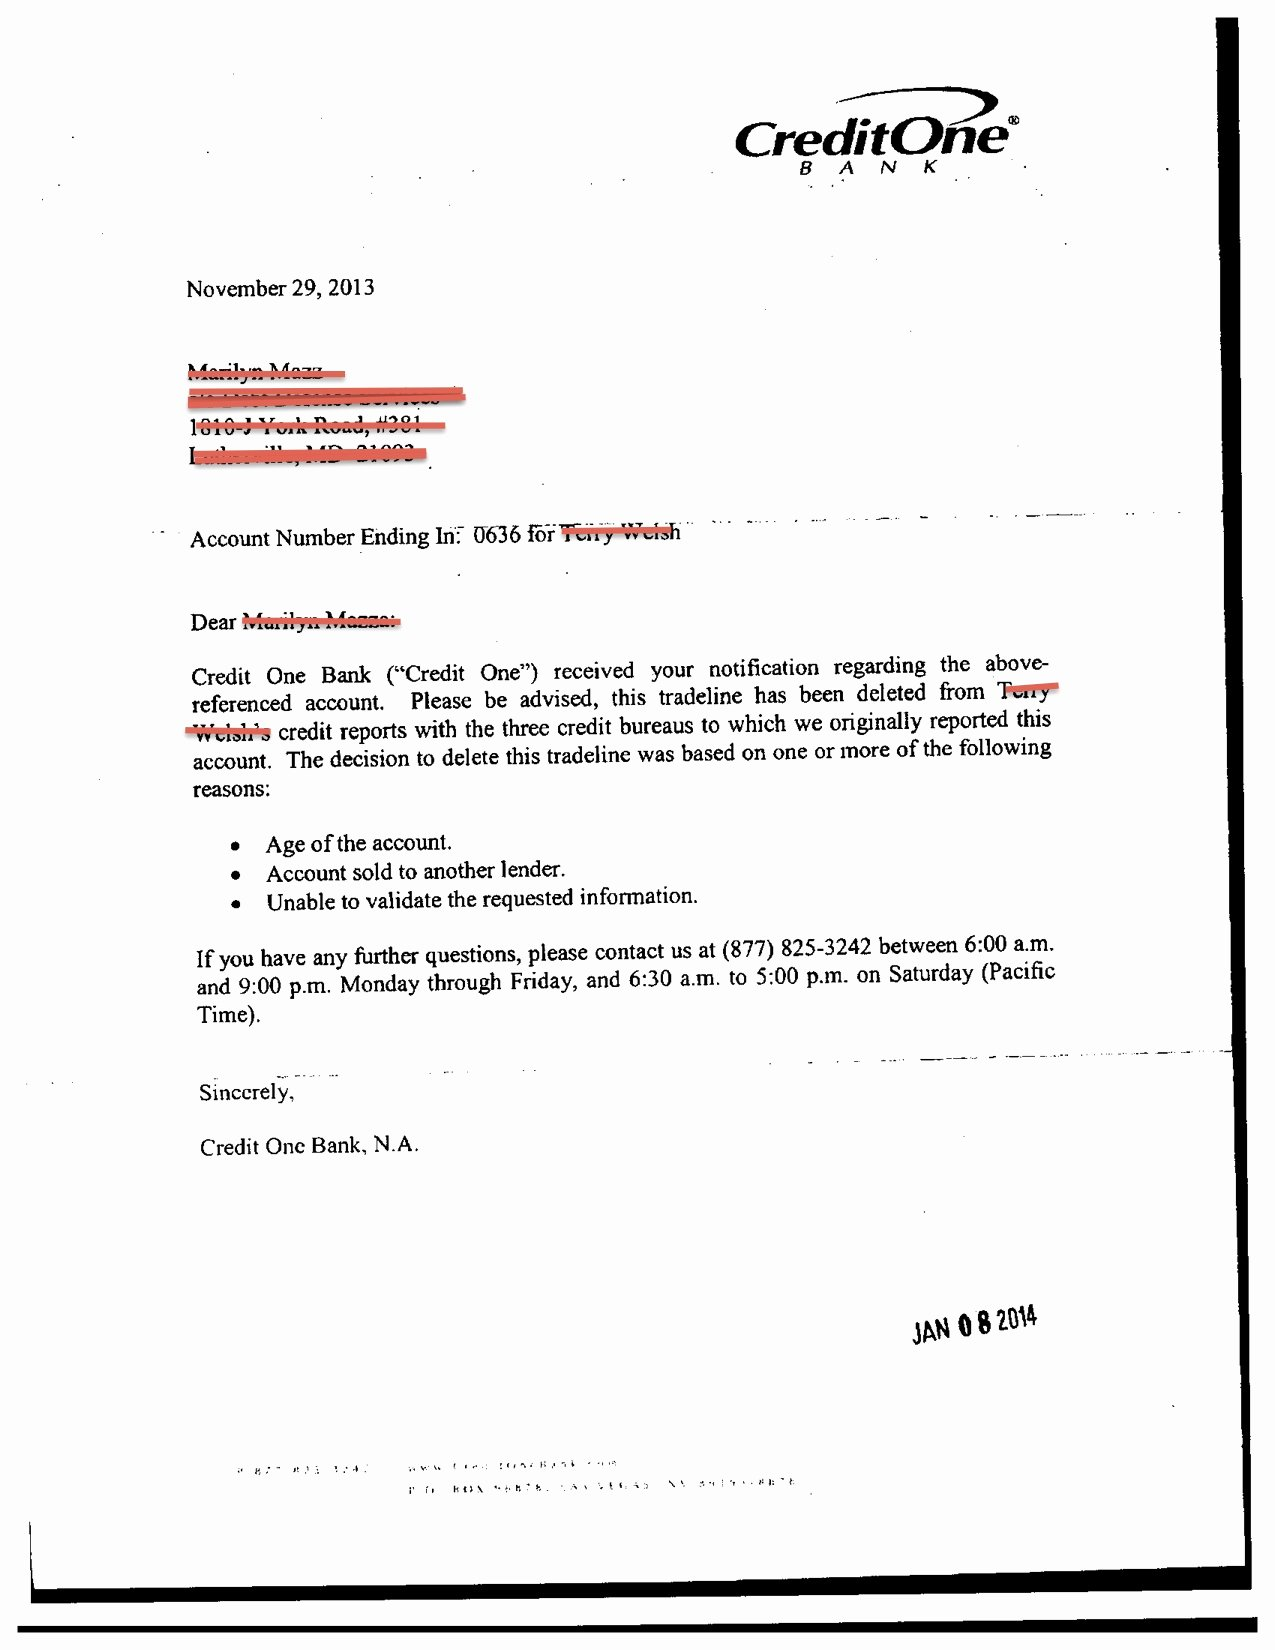 Debt Validation Letter Template Lovely Example Letters for Debt Settlement Validation & Credit